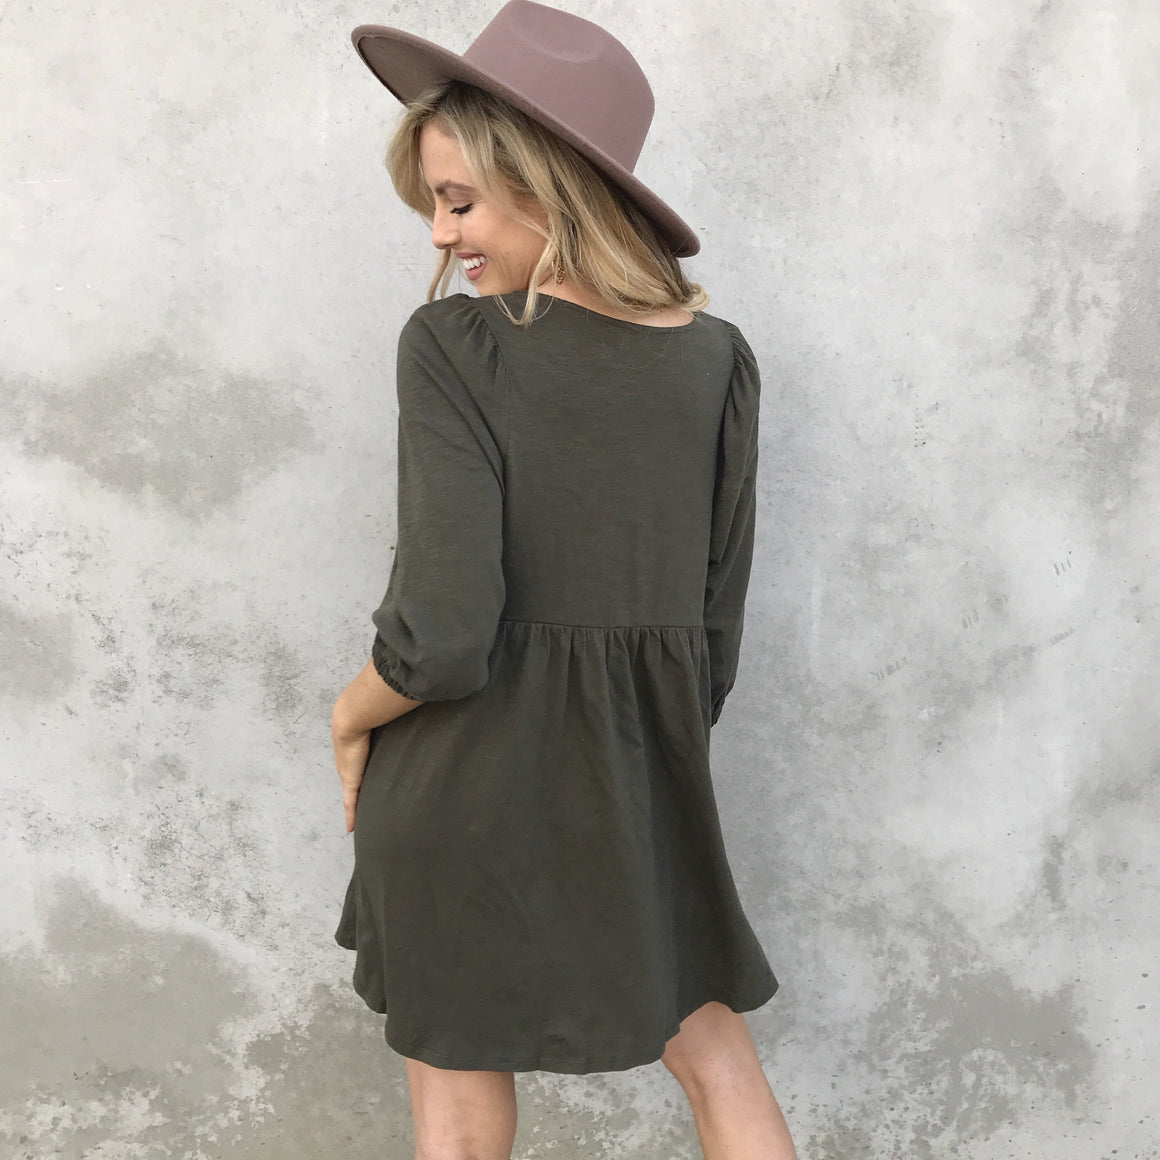 Bitter Sweet Babydoll Dress in Olive - Dainty Hooligan